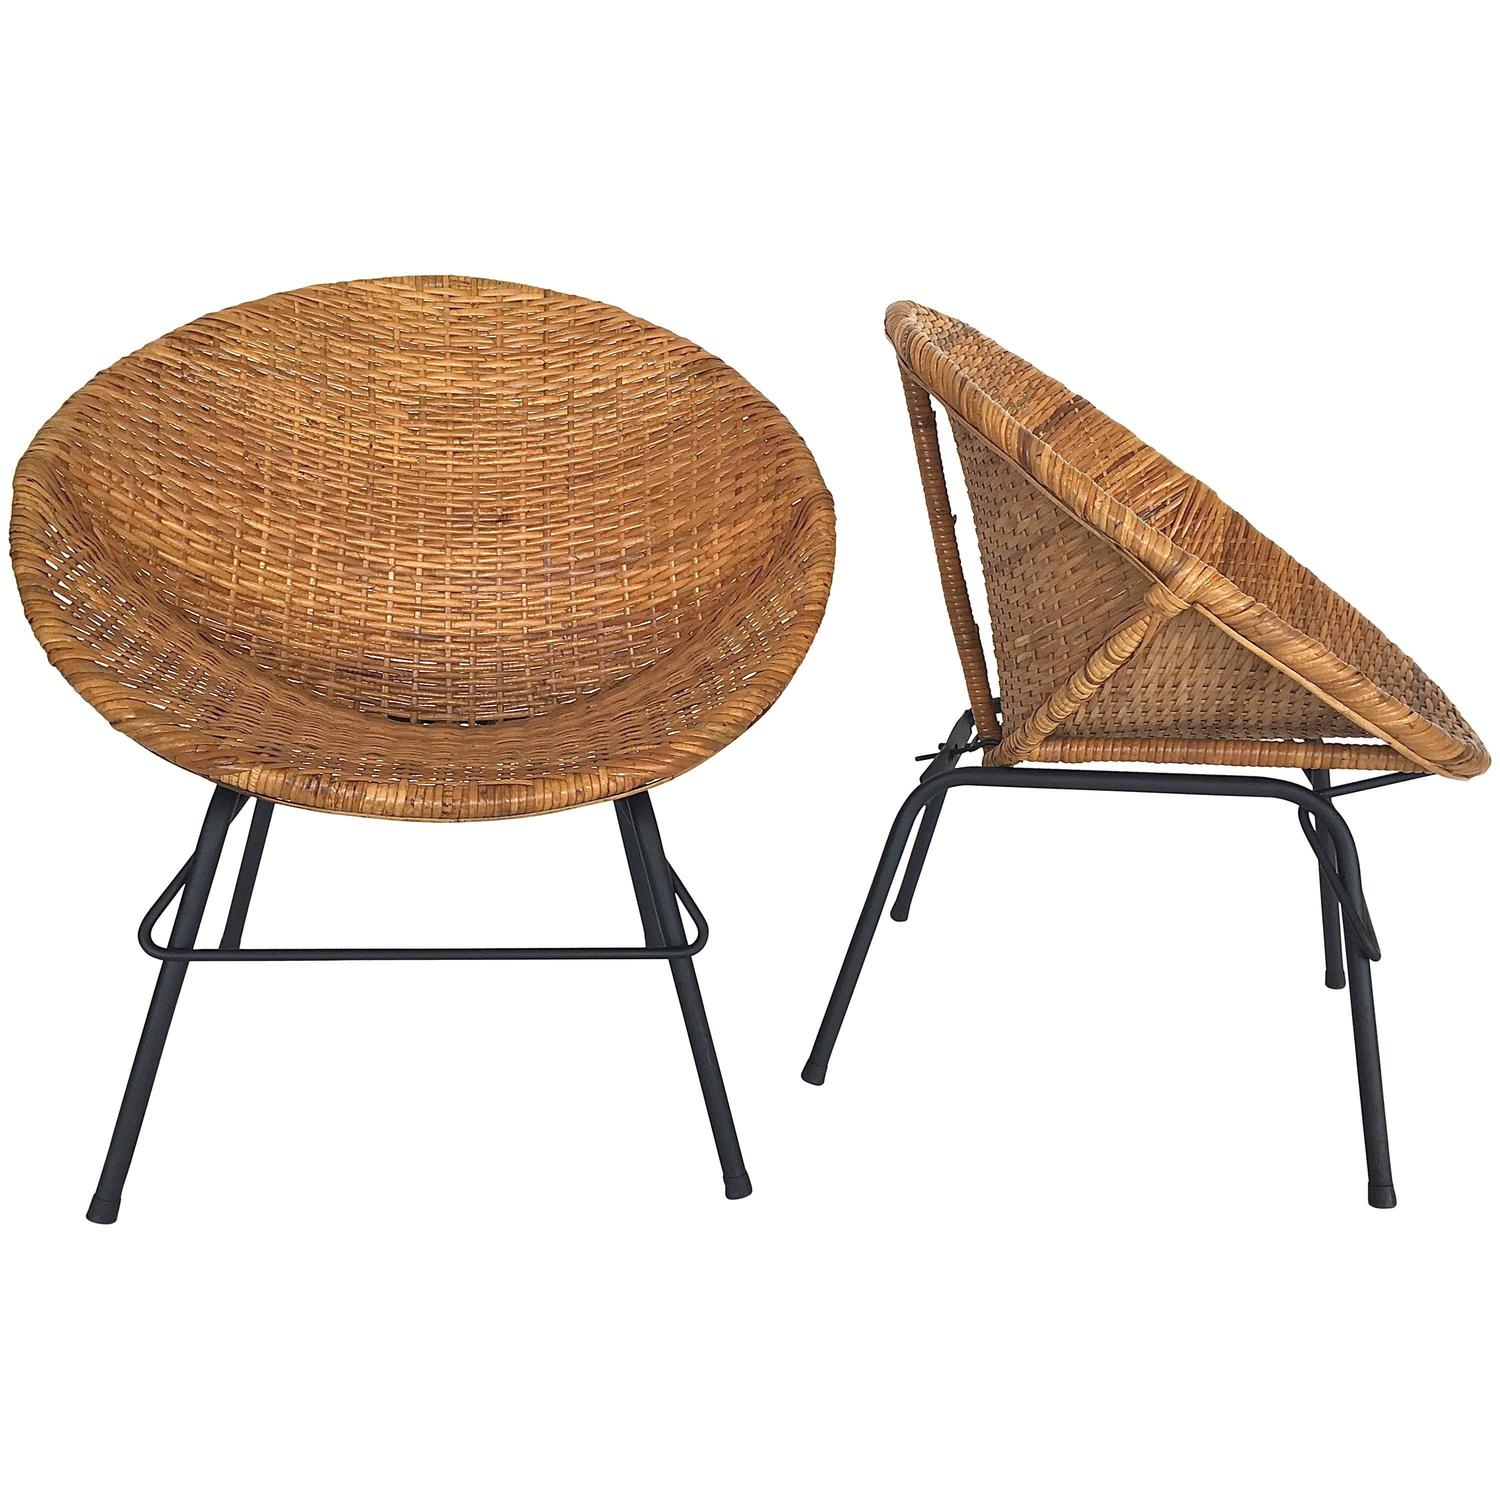 Wicker and Iron Scoop Bucket Chairs at 1stdibs